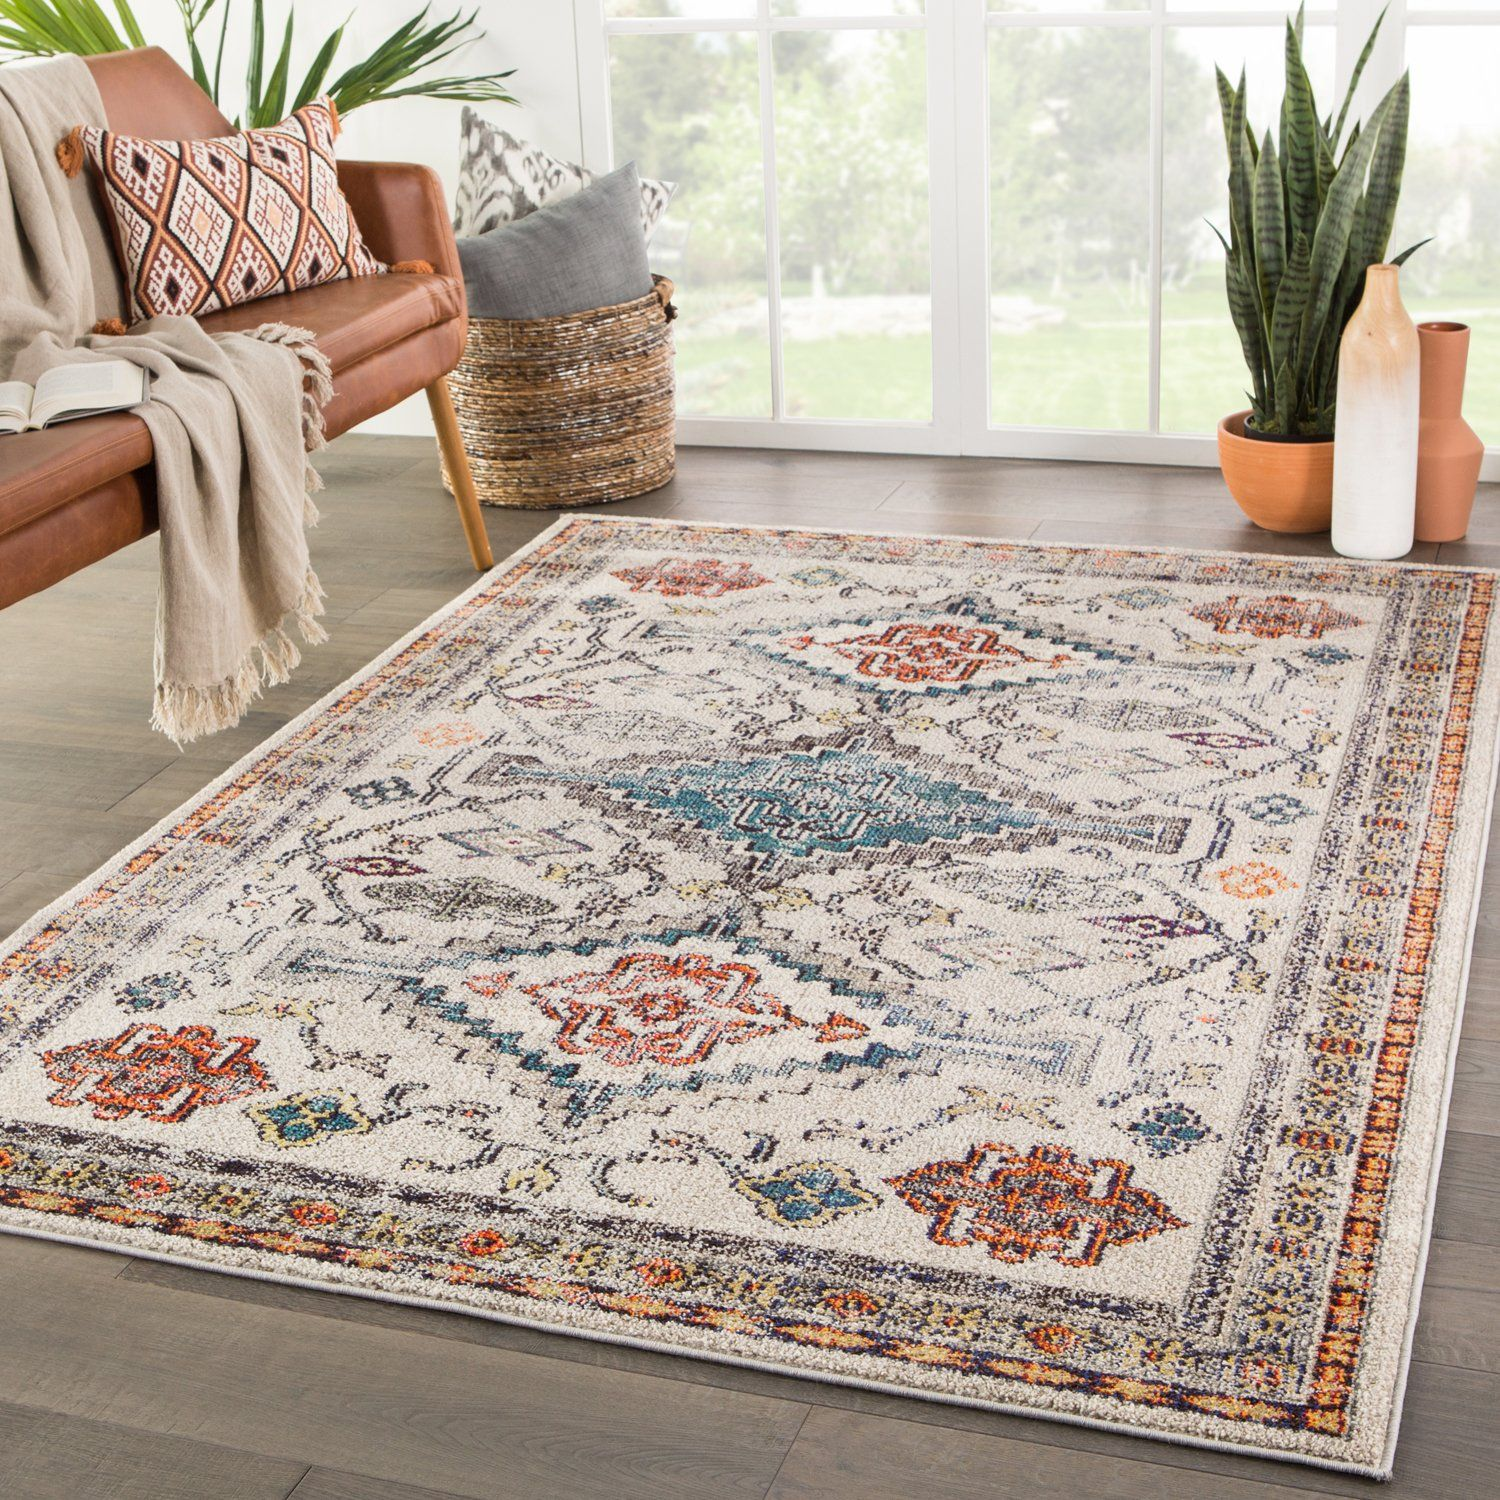 Jaipur Amuze Sheba Power Loomed Rug Area Rugs Rugs On Carpet